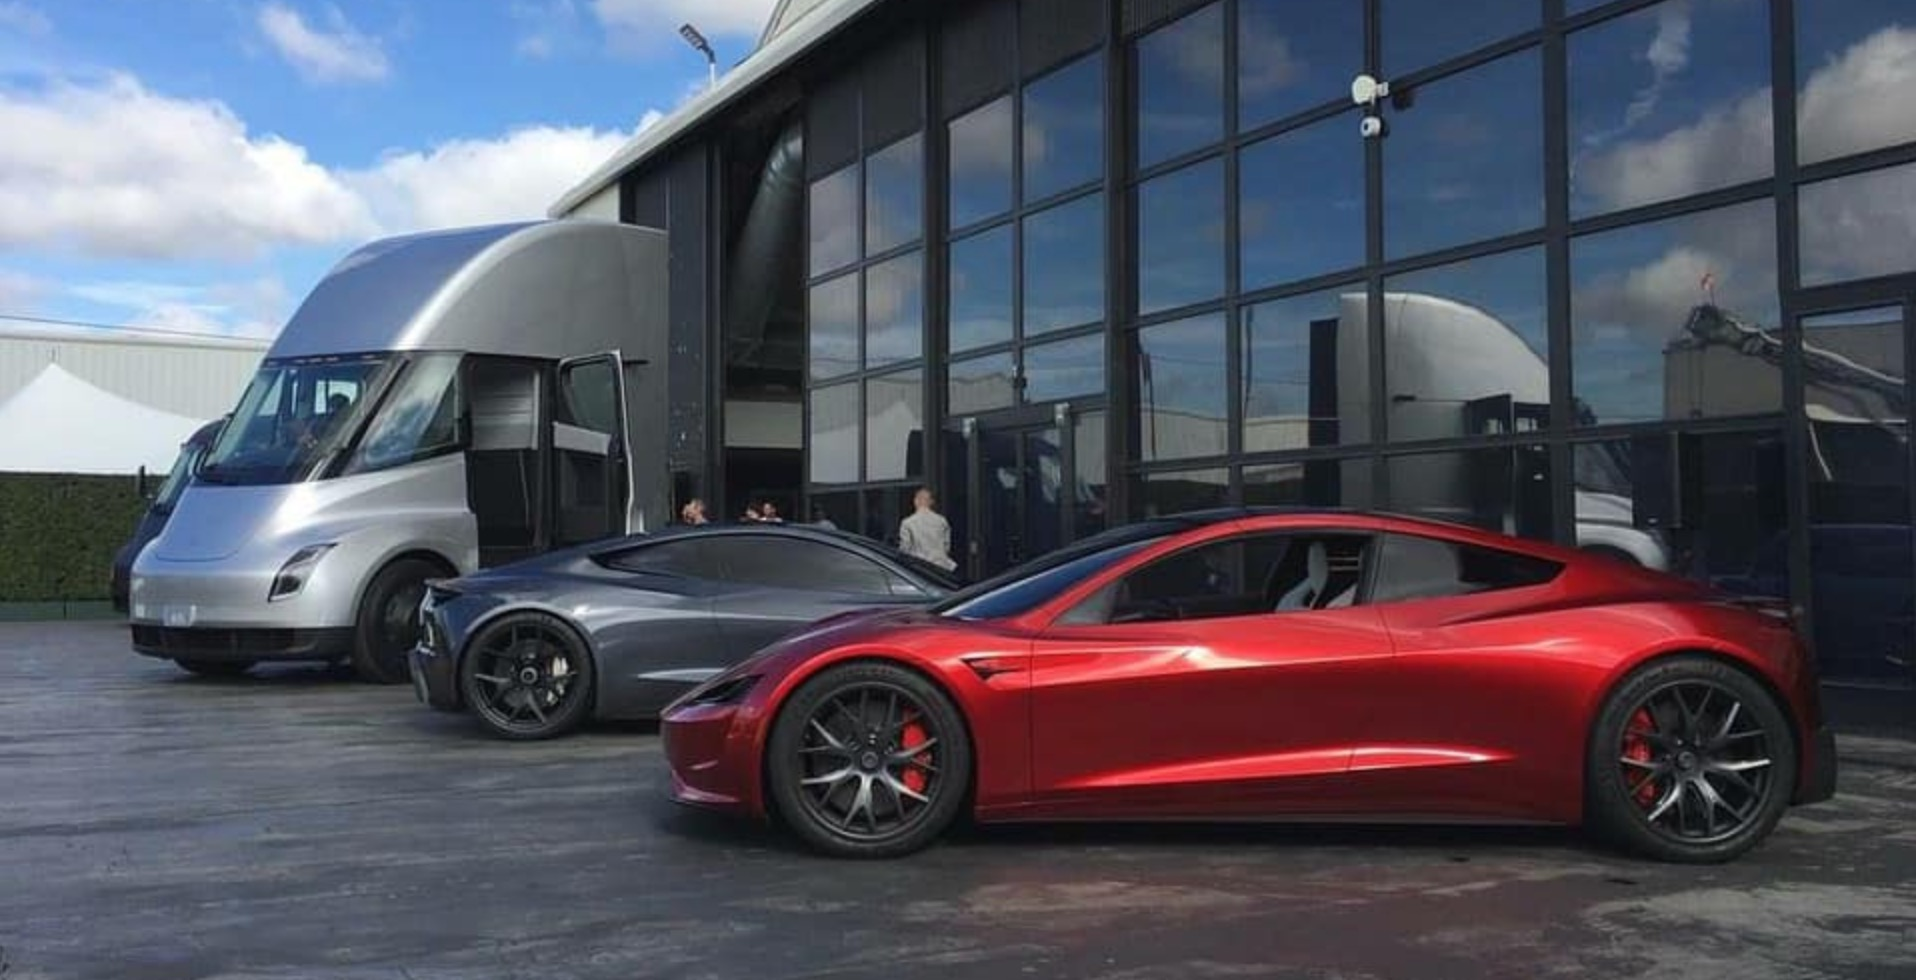 Tesla is giving away over 80 new Roadsters for free, which might have killed the referral program